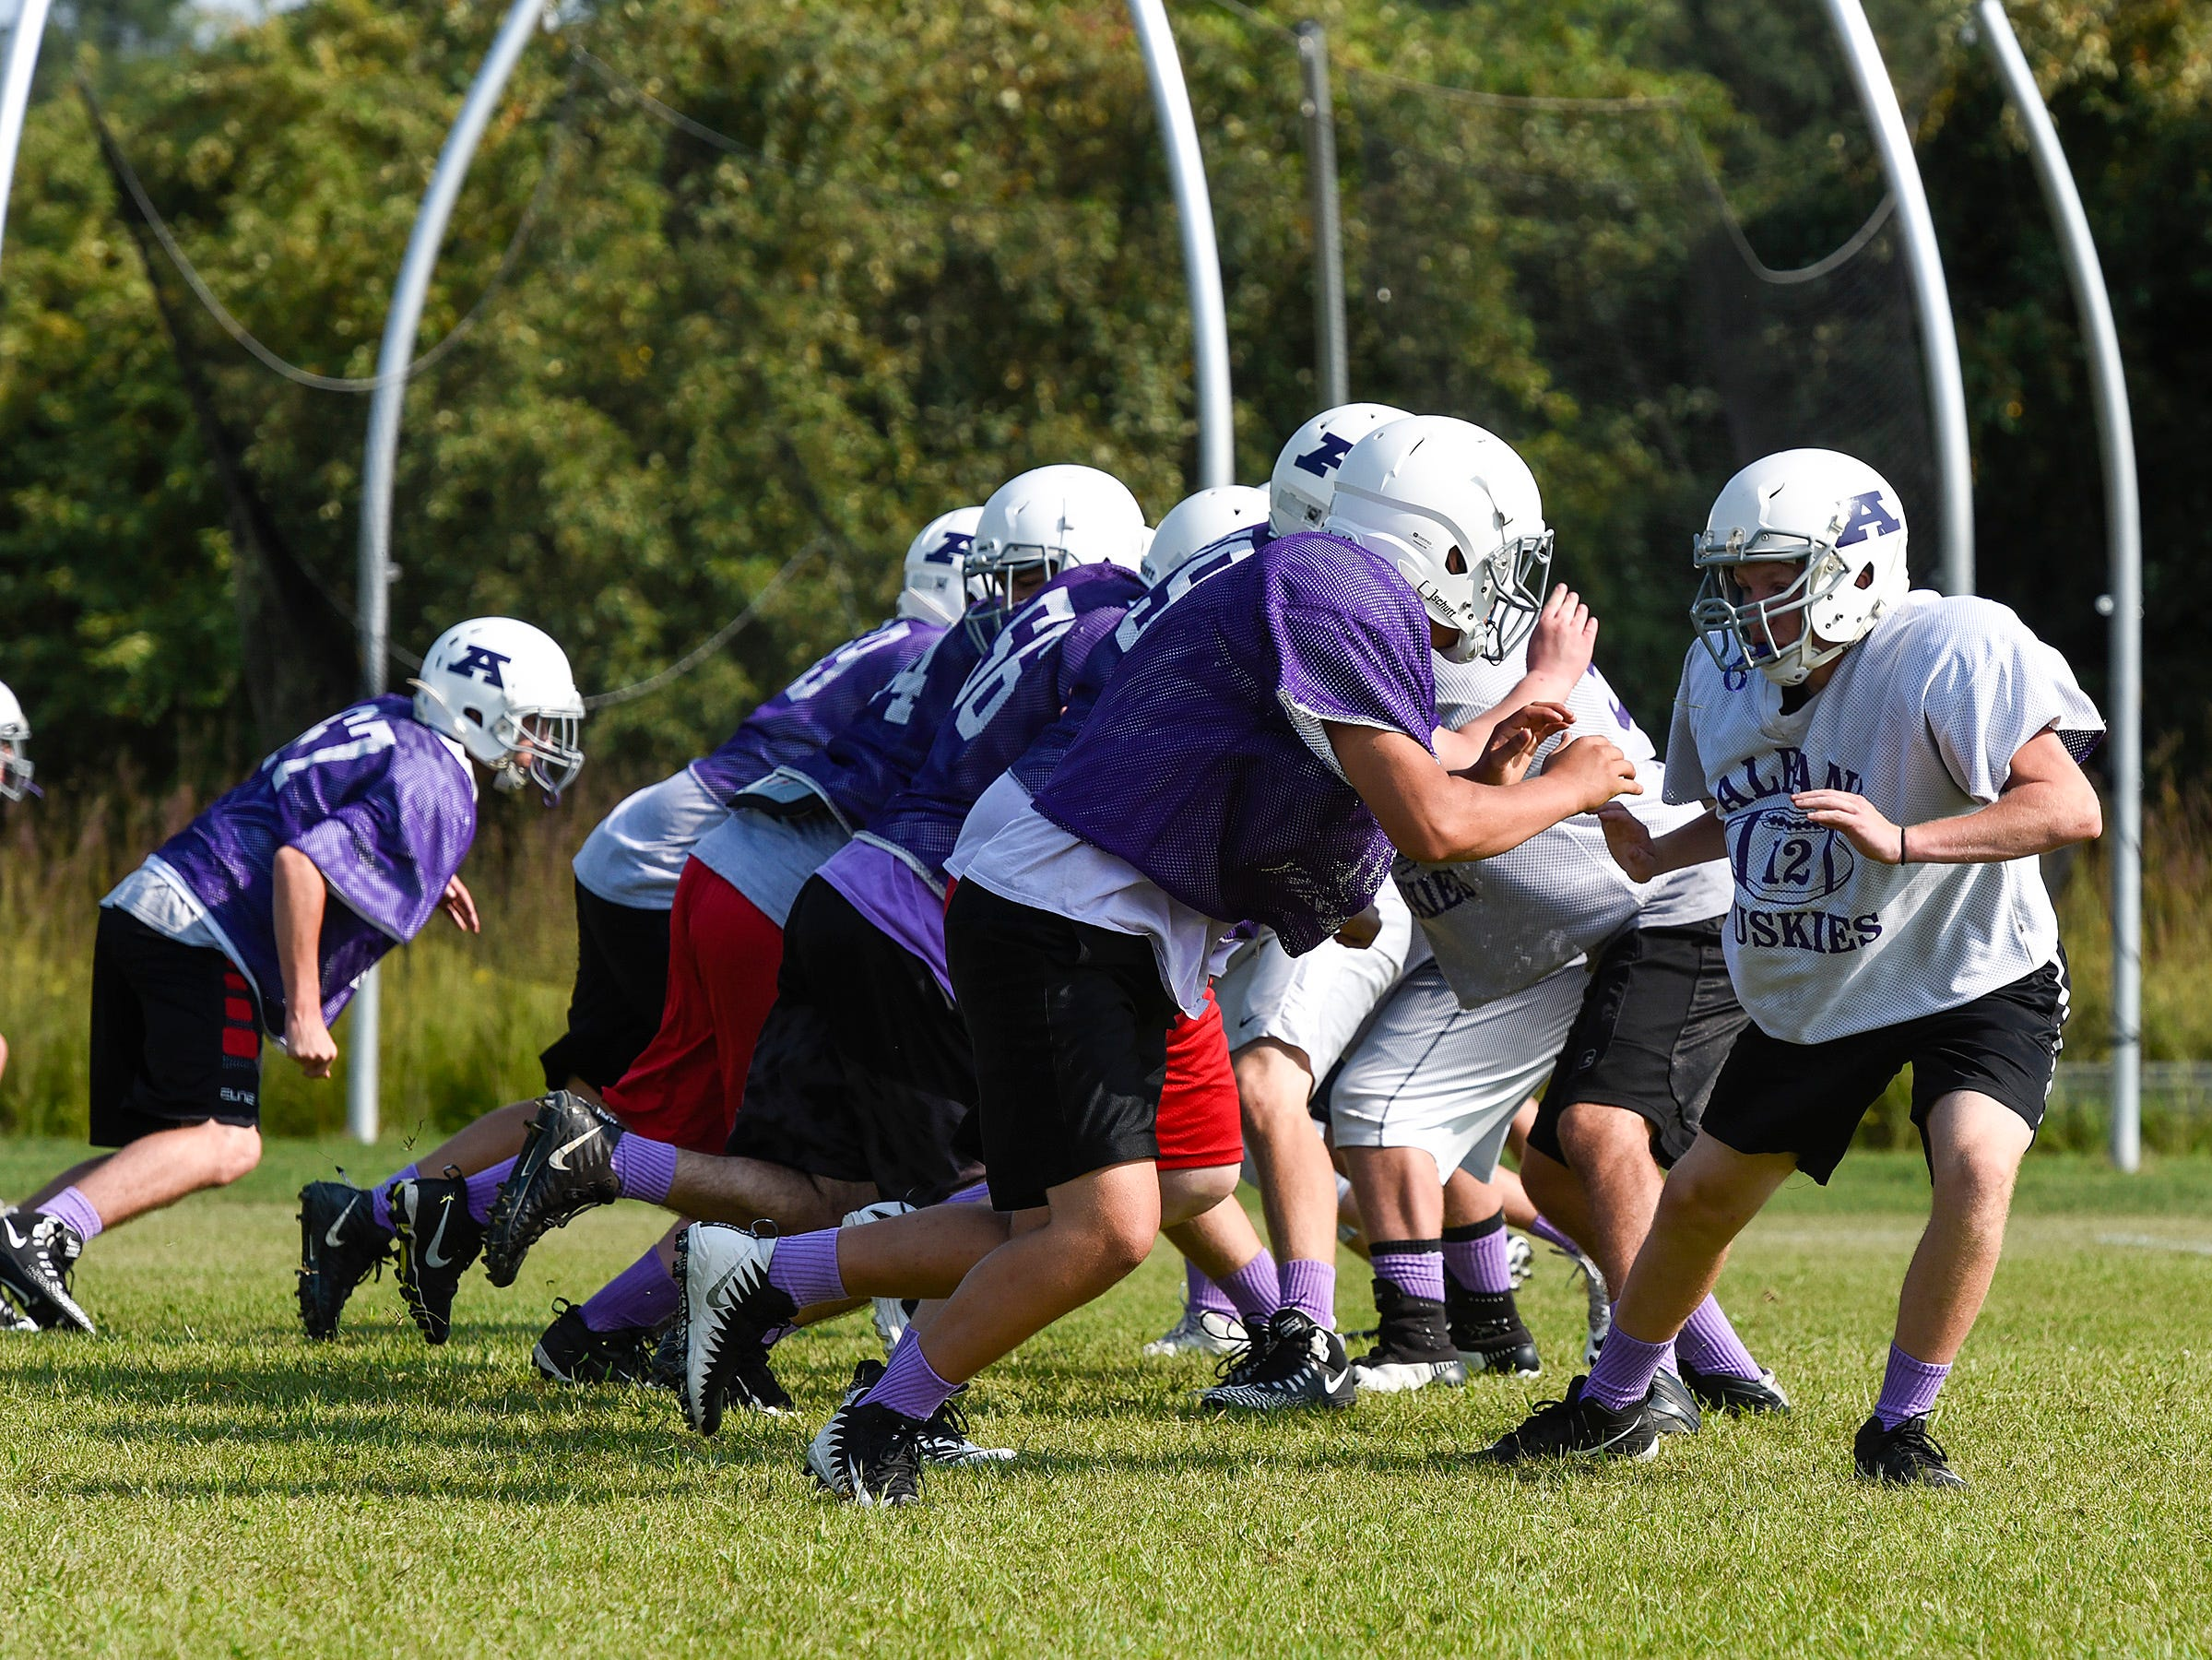 Albany runs their offense during practice Wednesday, Aug. 15, at the Albany High School.